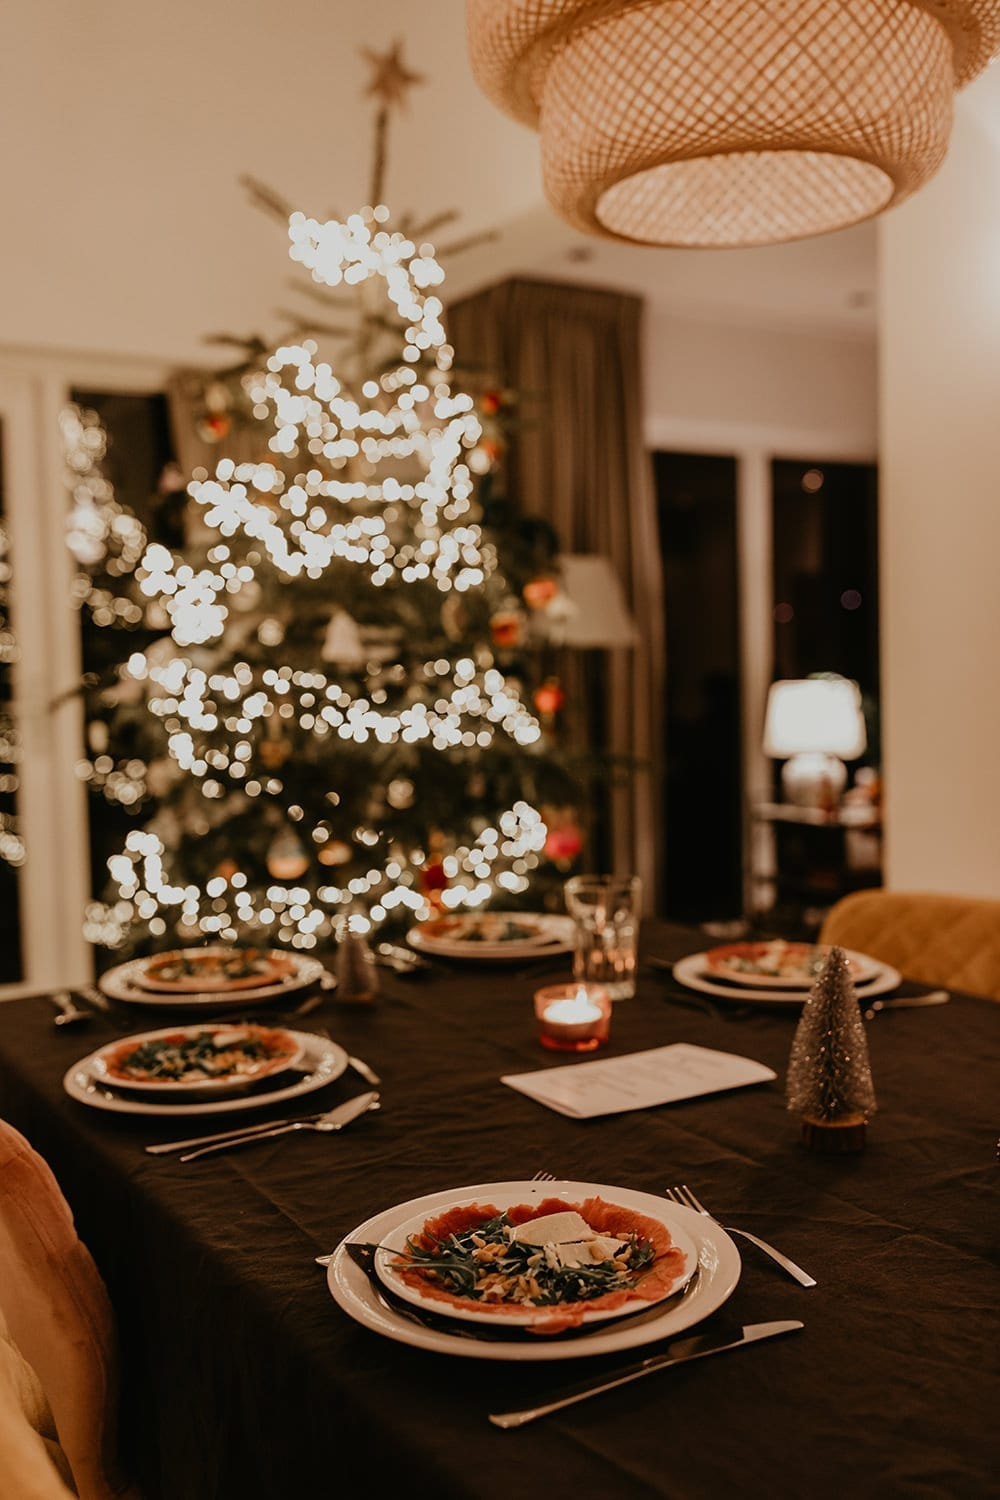 Decorated table with carpaccio and a christmas tree in the background